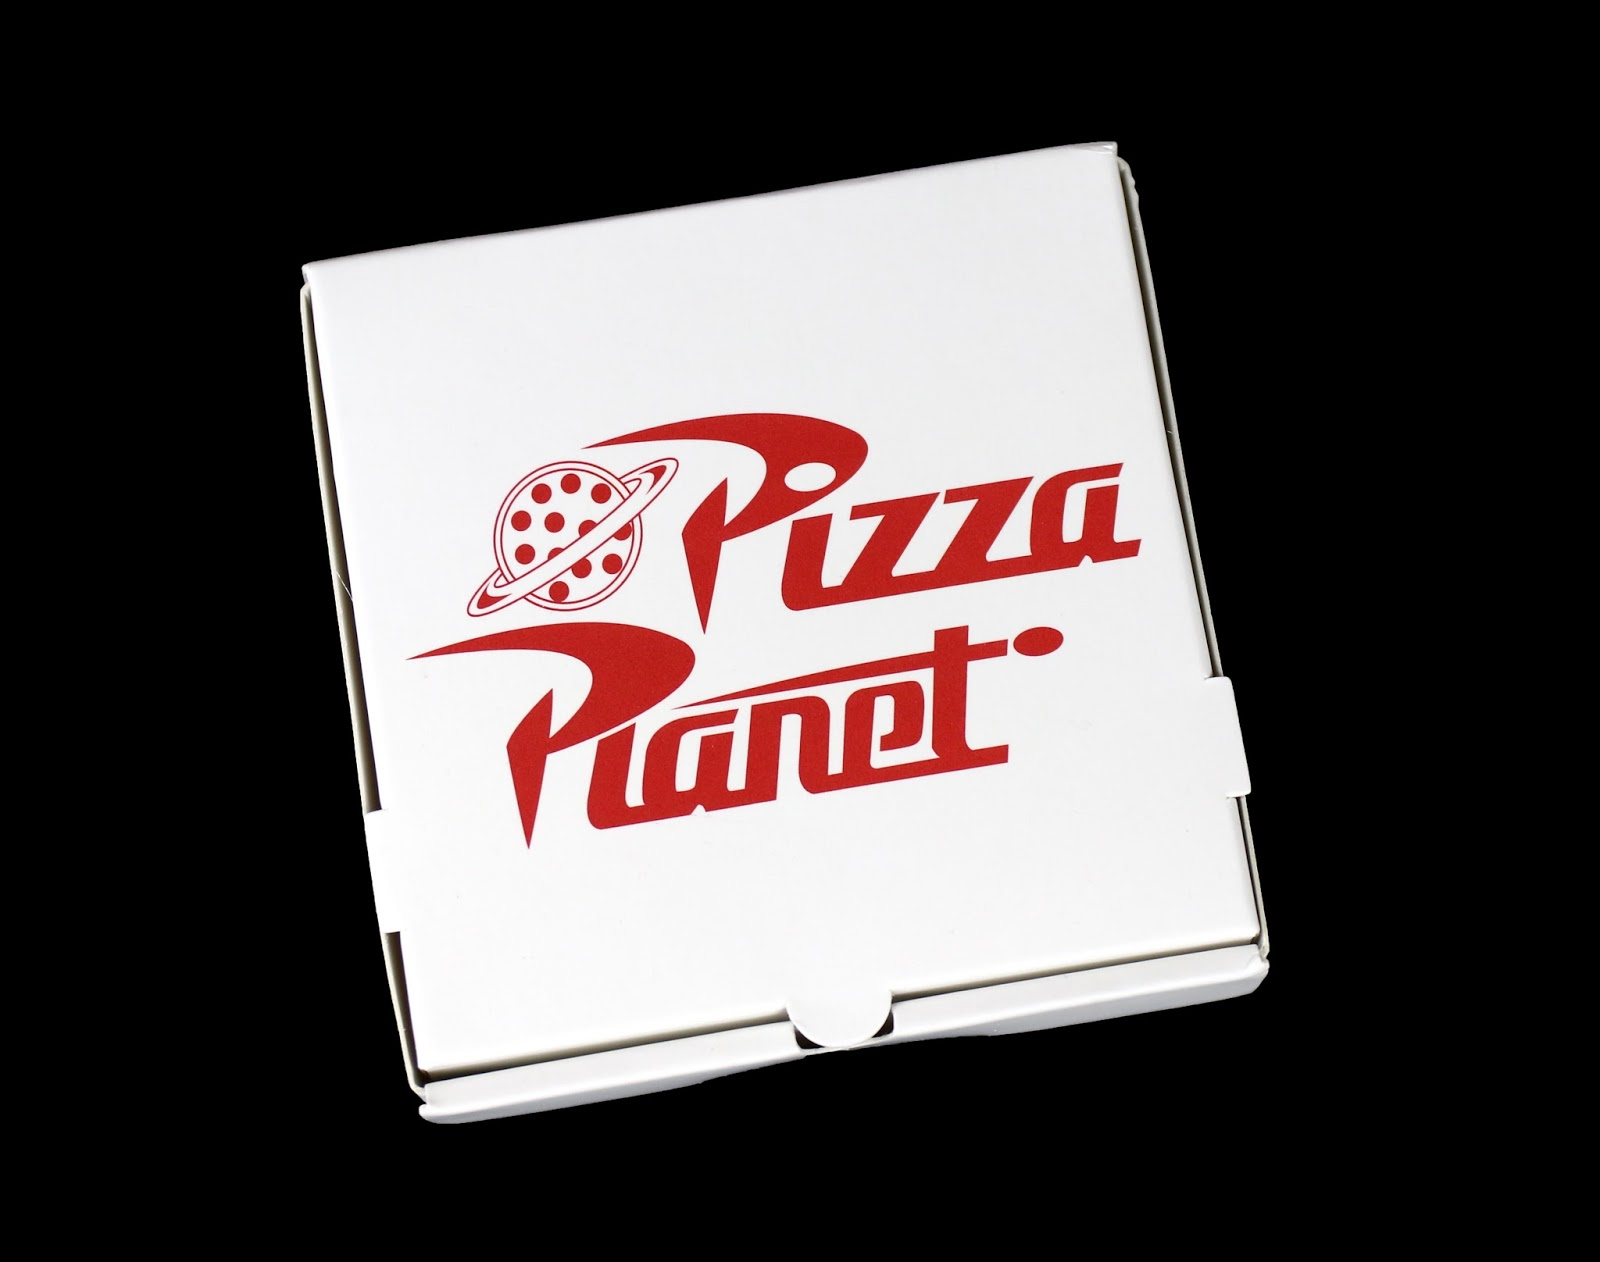 toy story pizza planet sticky note set